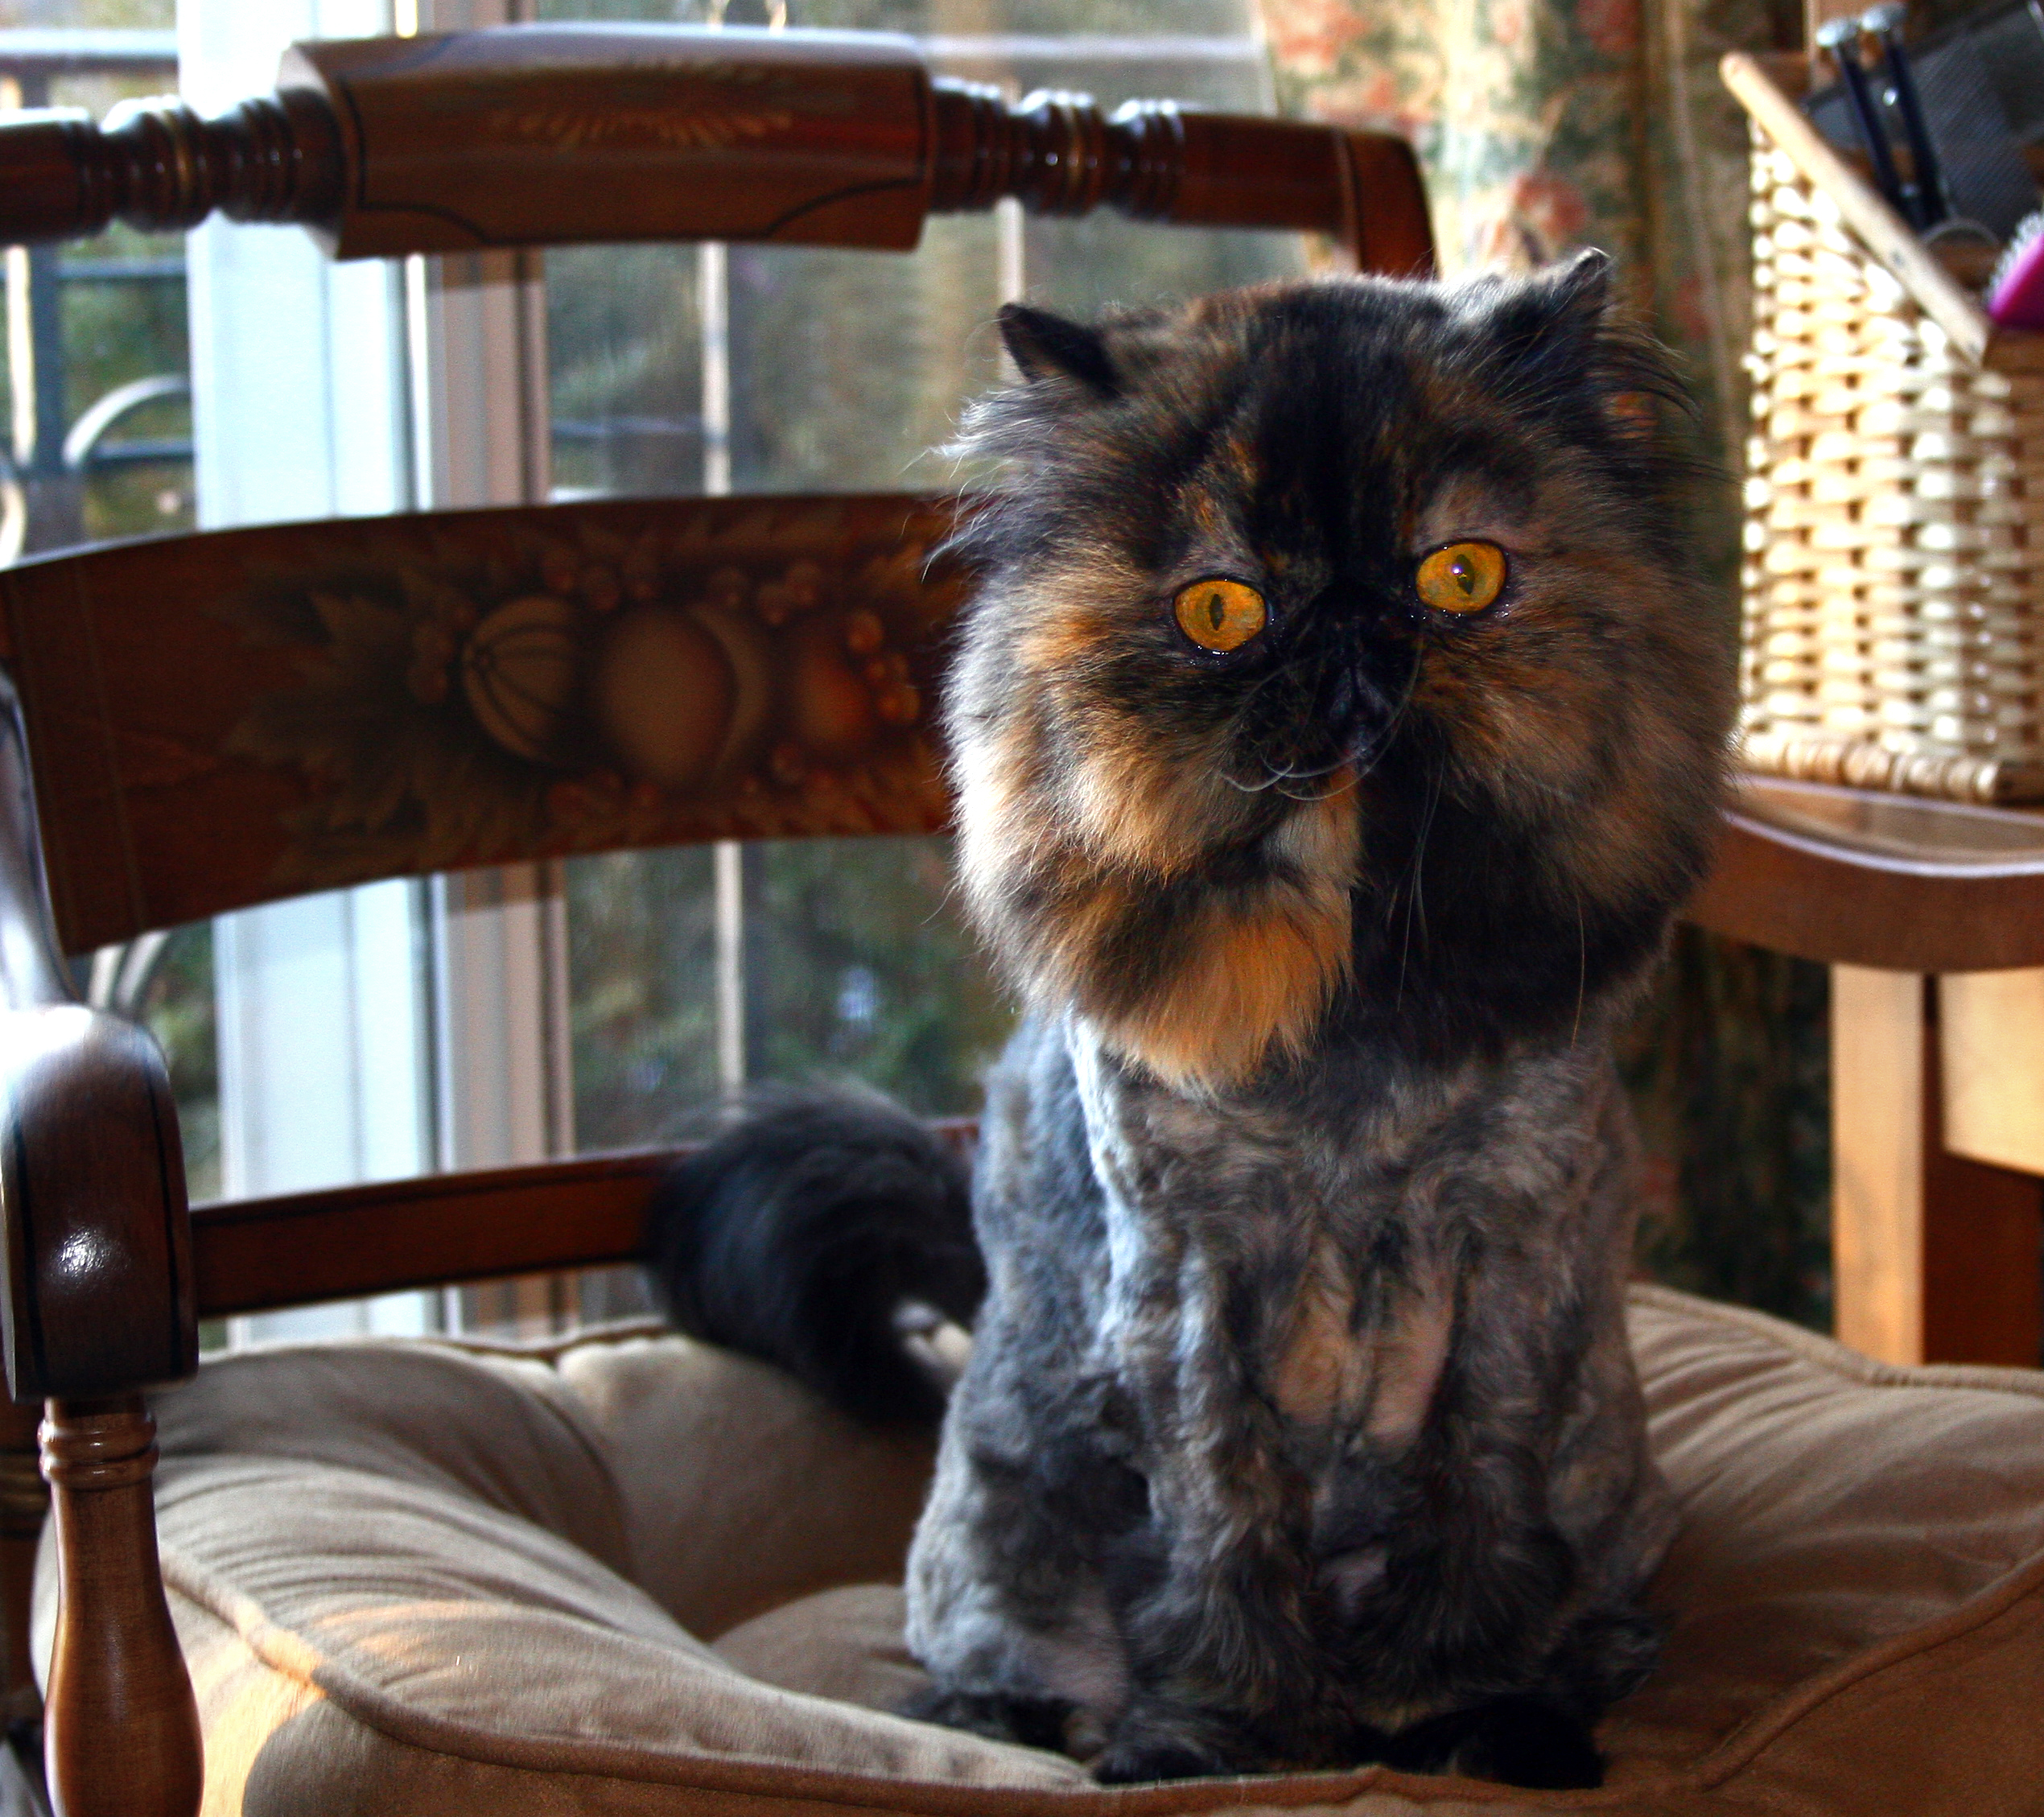 http://upload.wikimedia.org/wikipedia/commons/d/d4/Lion_cut_tortoiseshell_Persian.jpg